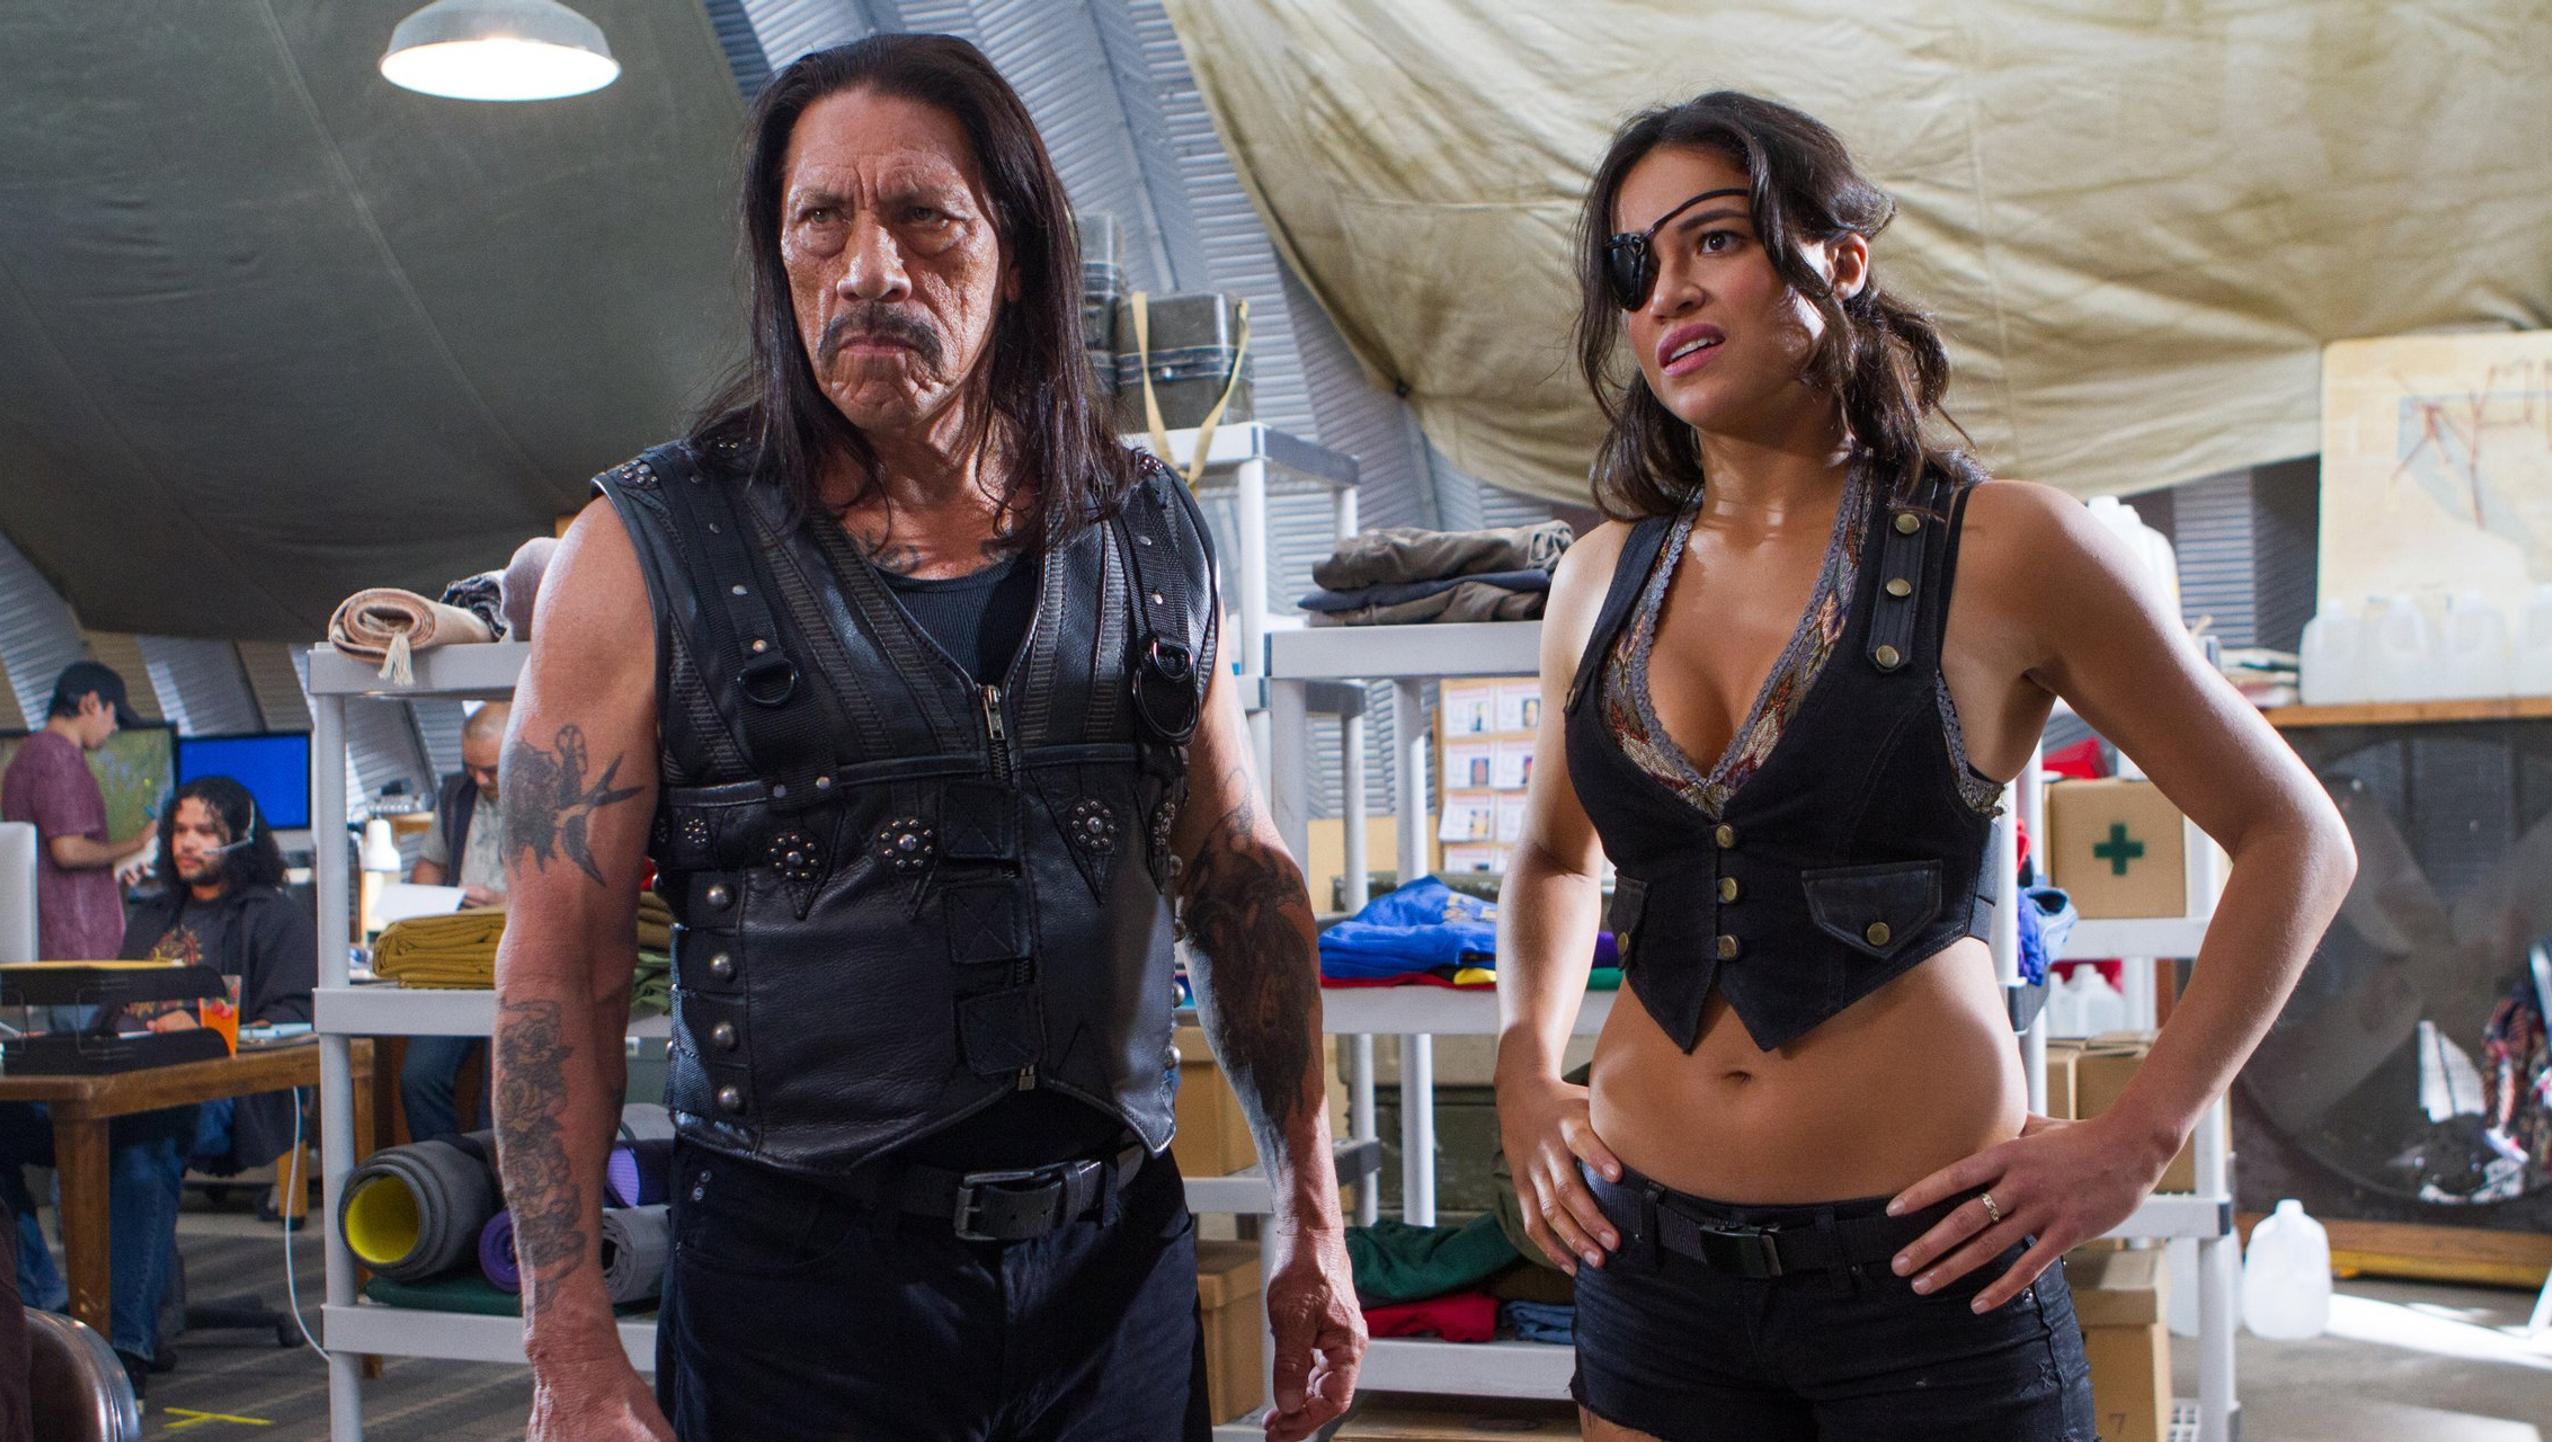 Machete (Danny Trejo) and She (Michelle Rodriguez) in Machete Kills (2013)